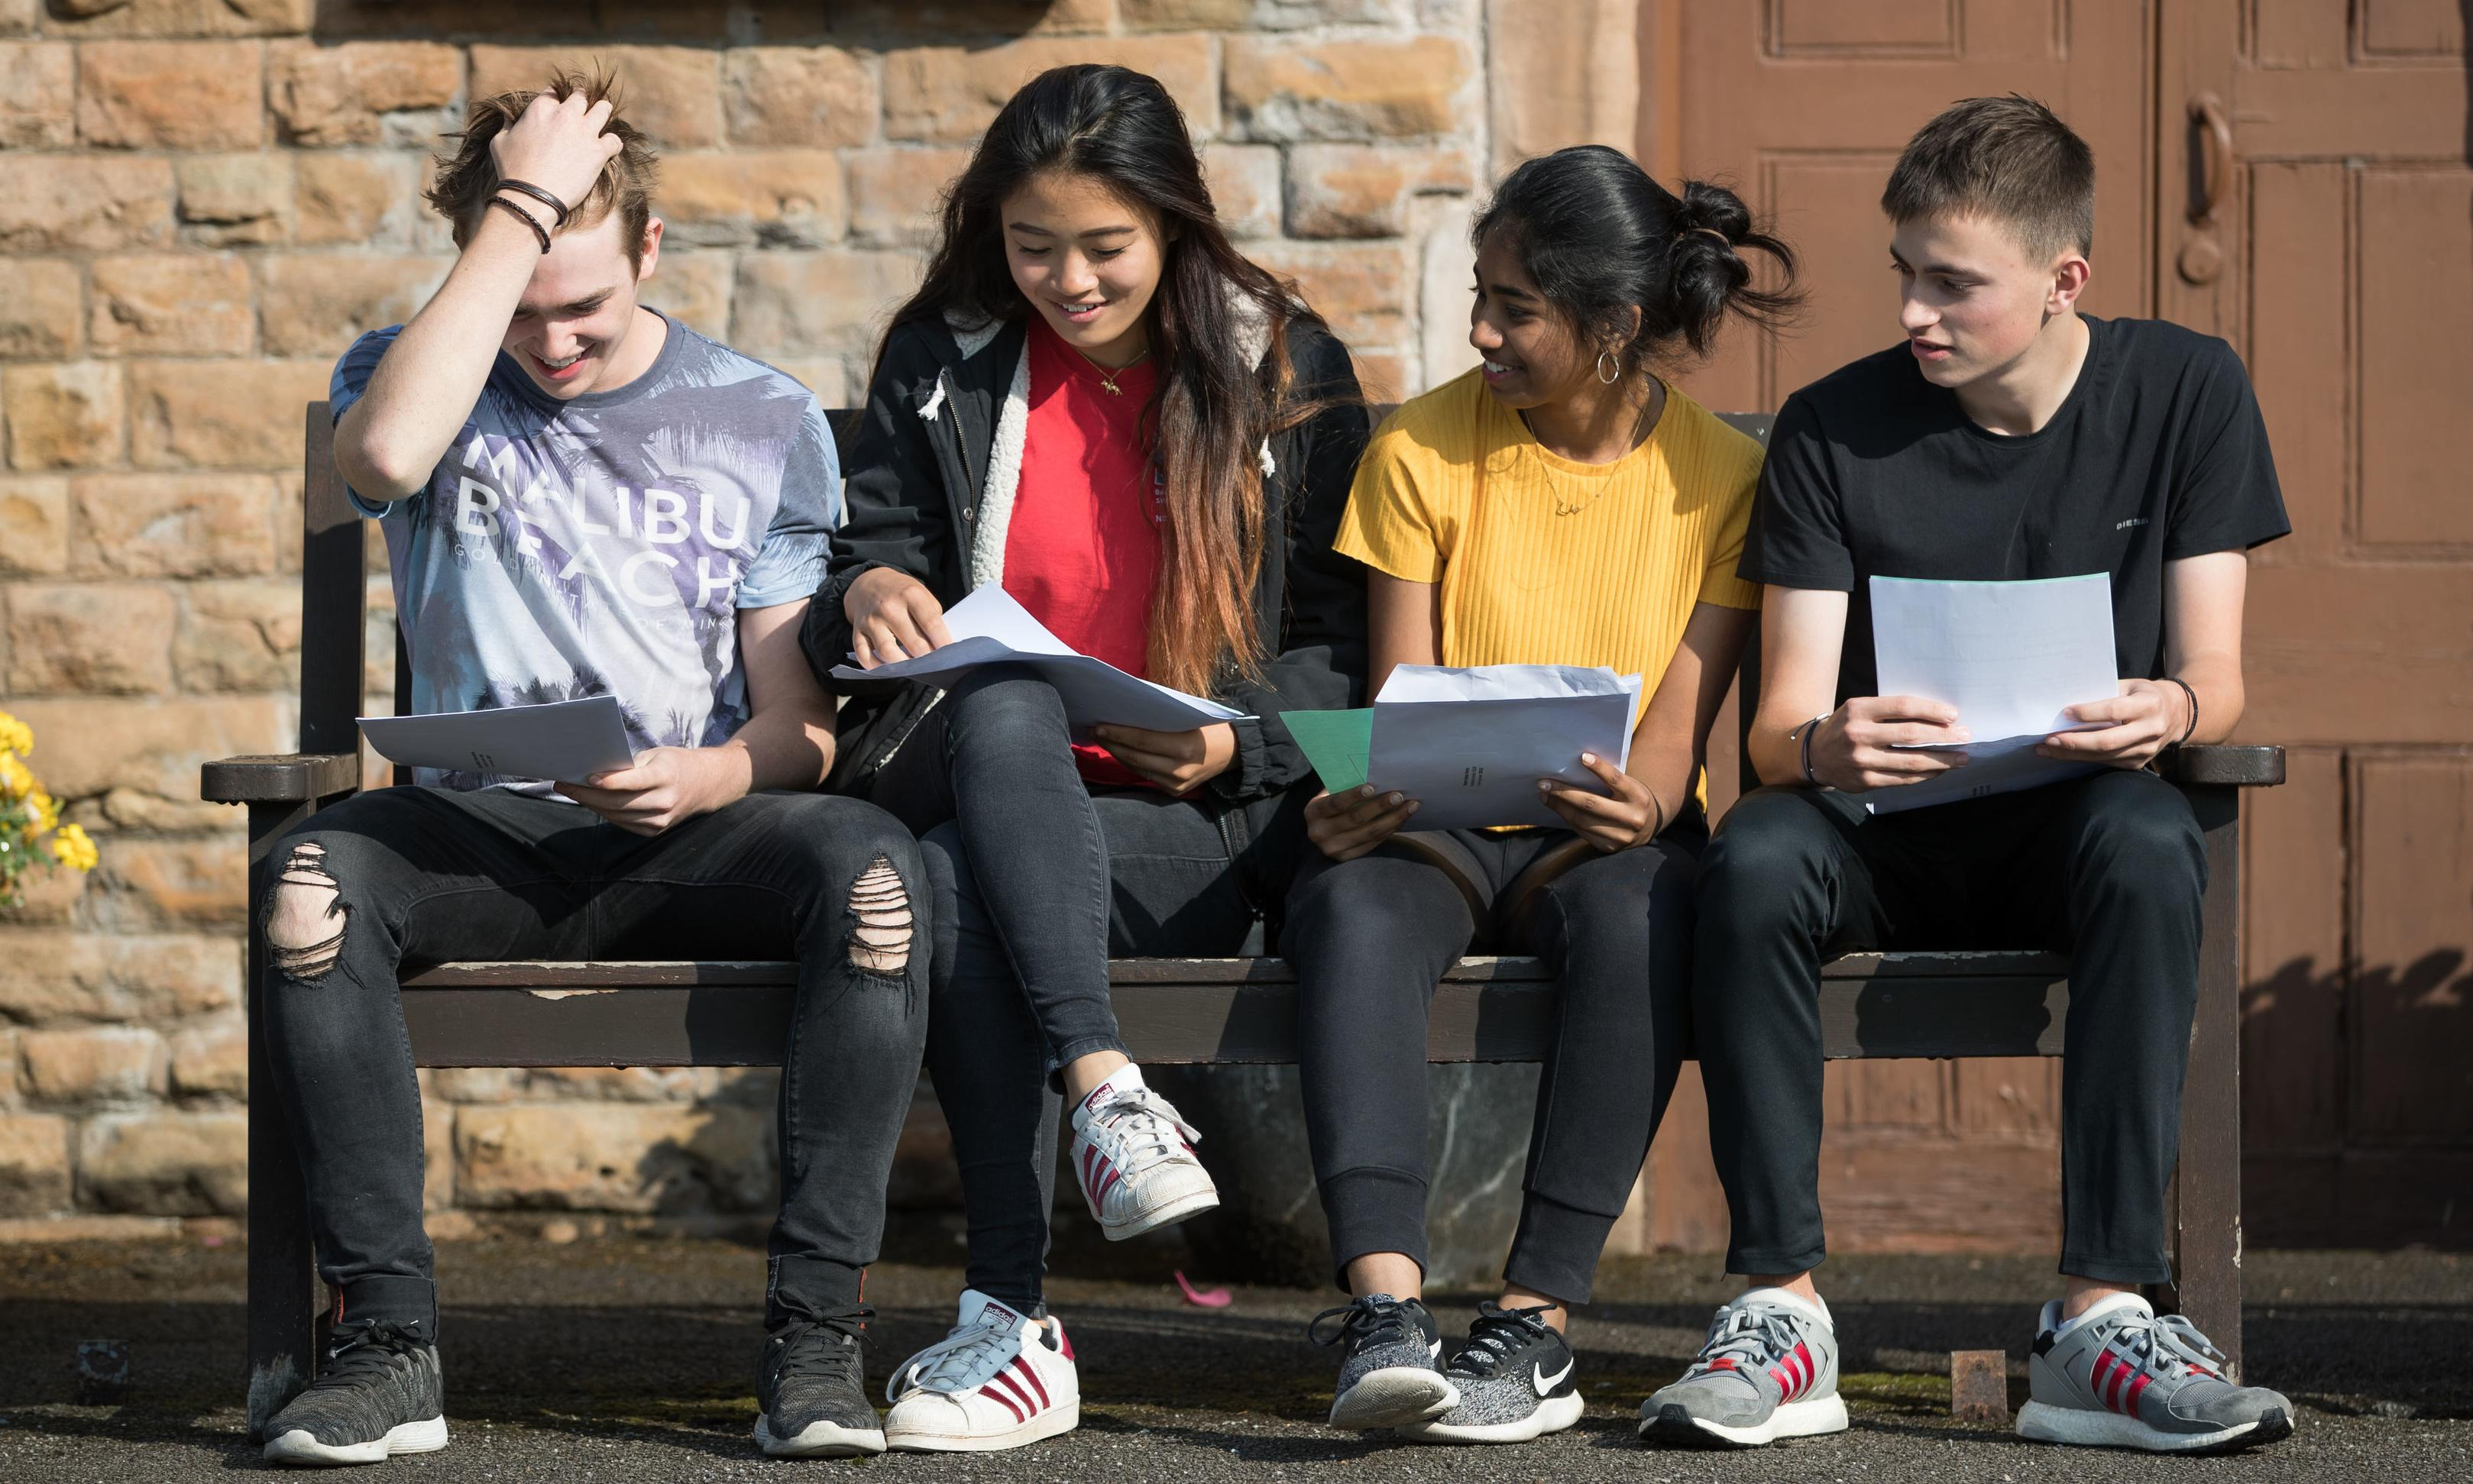 Don't despair if GSCE results day doesn't go your way – life is only just beginning